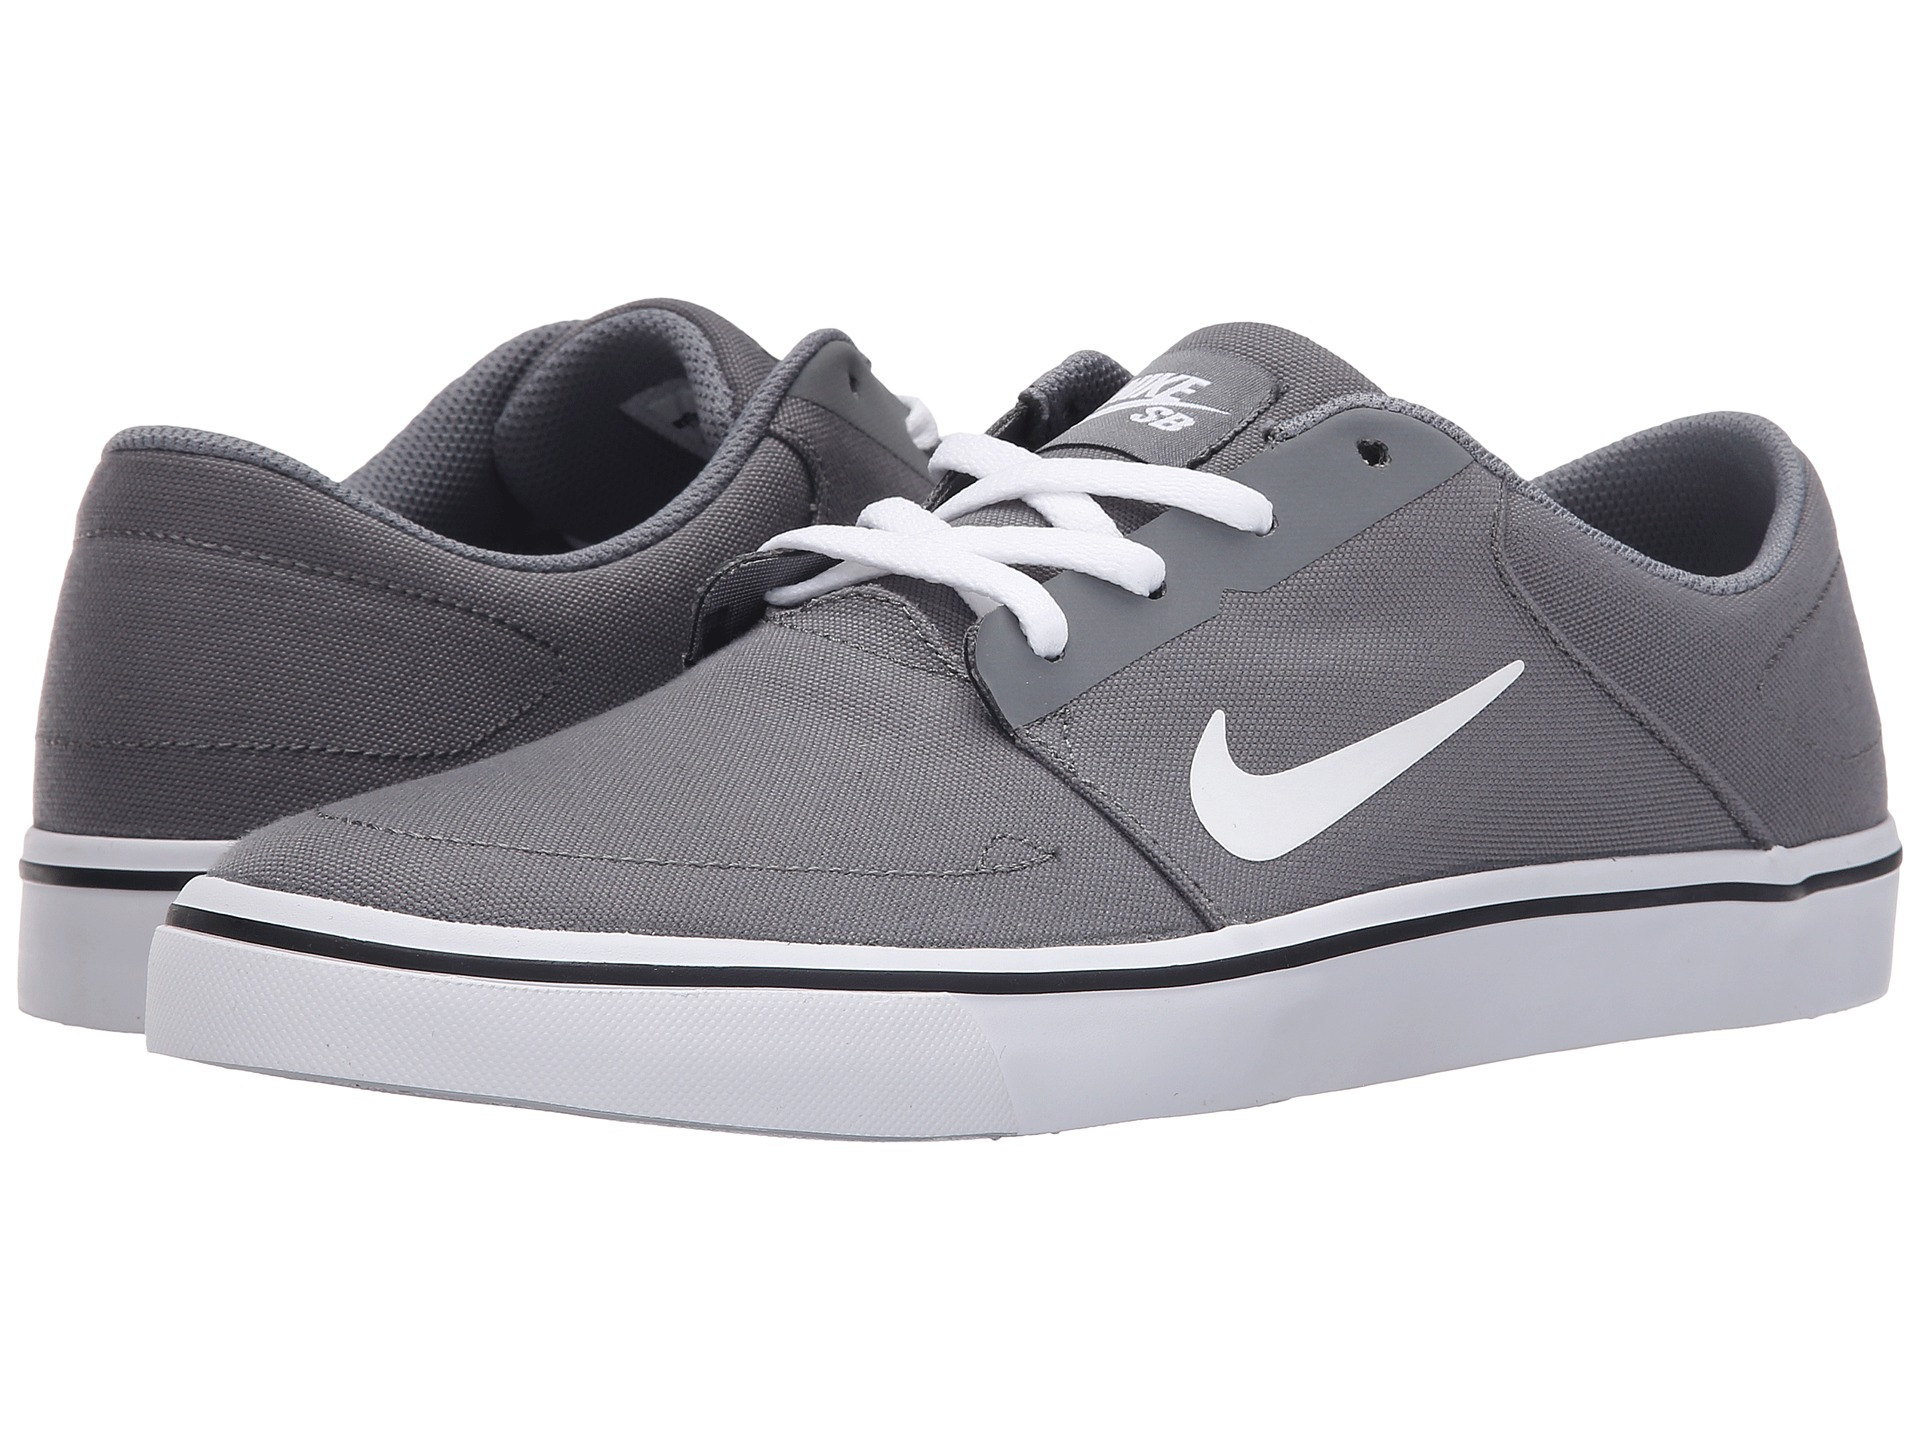 cheap for discount 1470f 01eb7 Nike SB Portmore Canvas at new